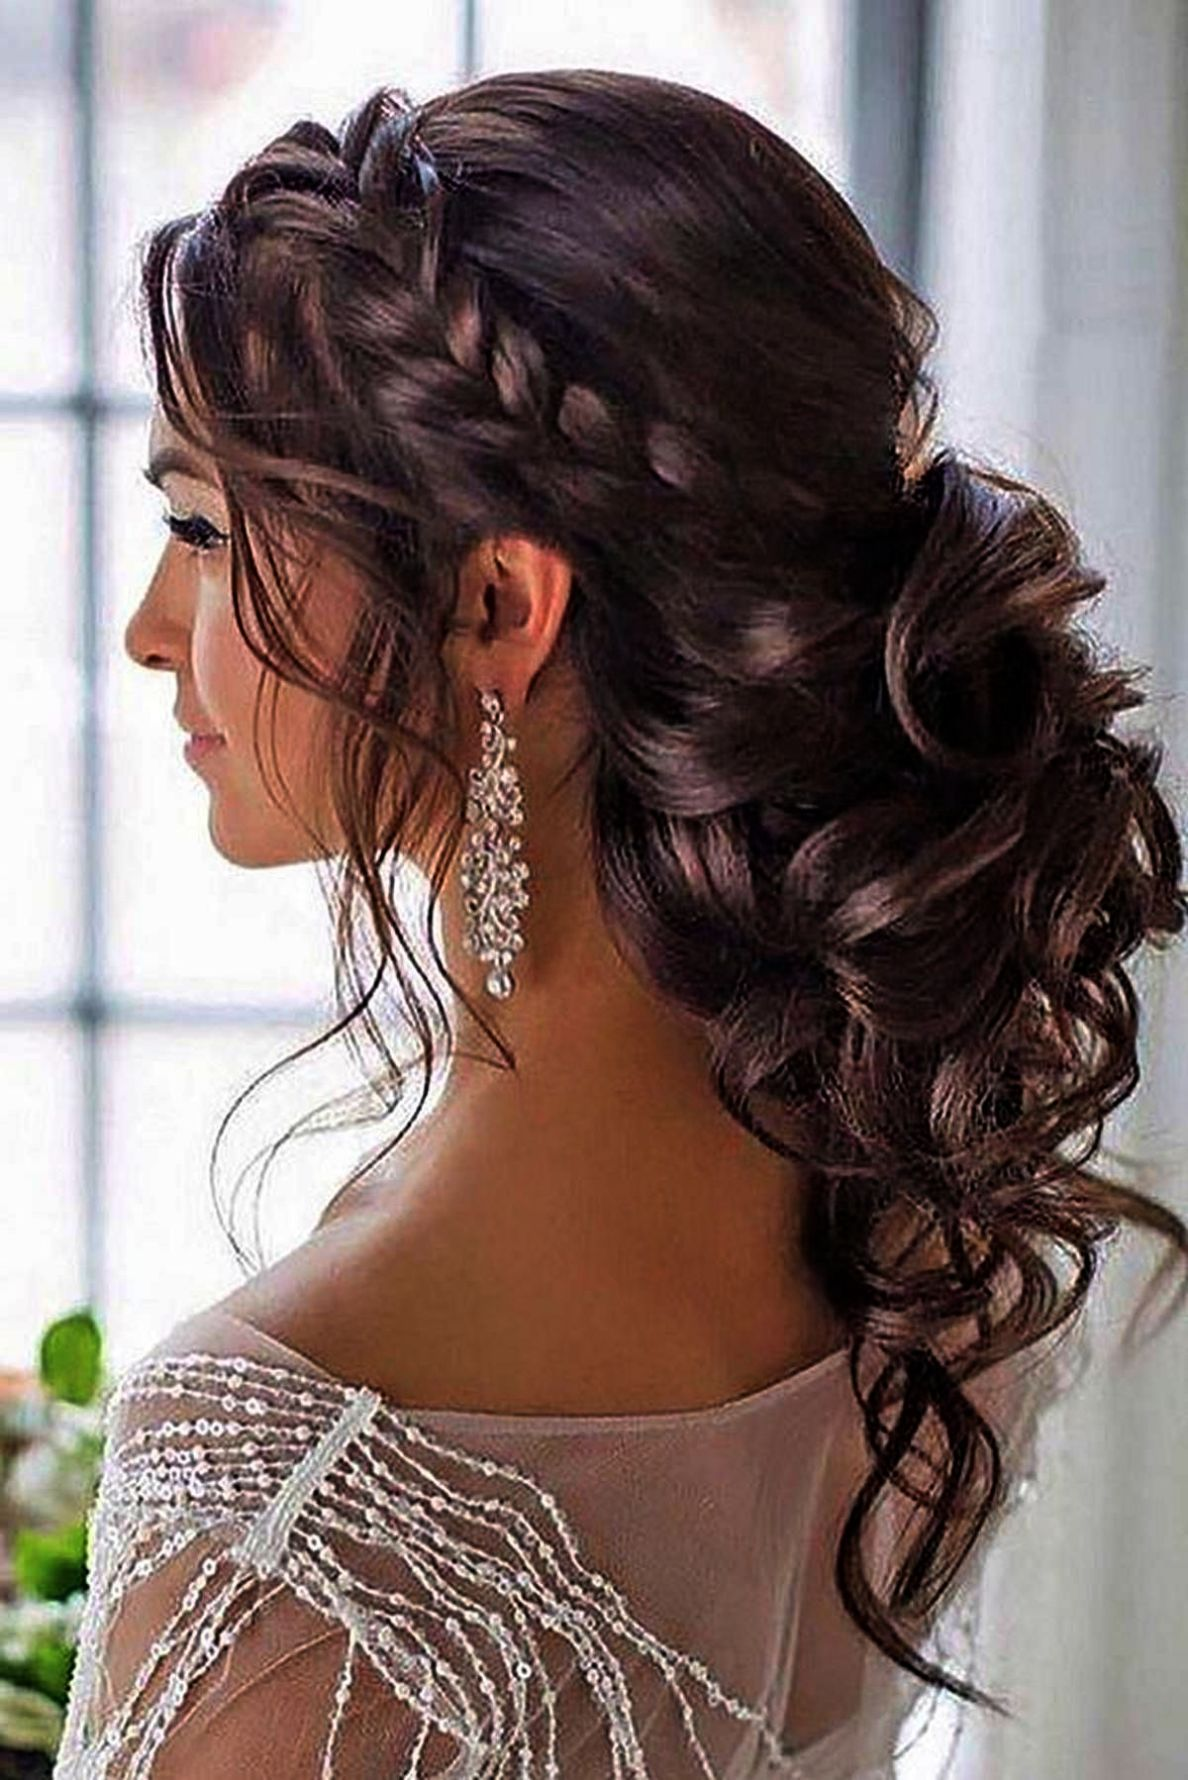 Simple Hairstyles For Wedding Party Step By Step Simple Wedding Hairstyles For Long Curly Hair Diyhairstyles Hair Lengths Long Hair Styles Quince Hairstyles